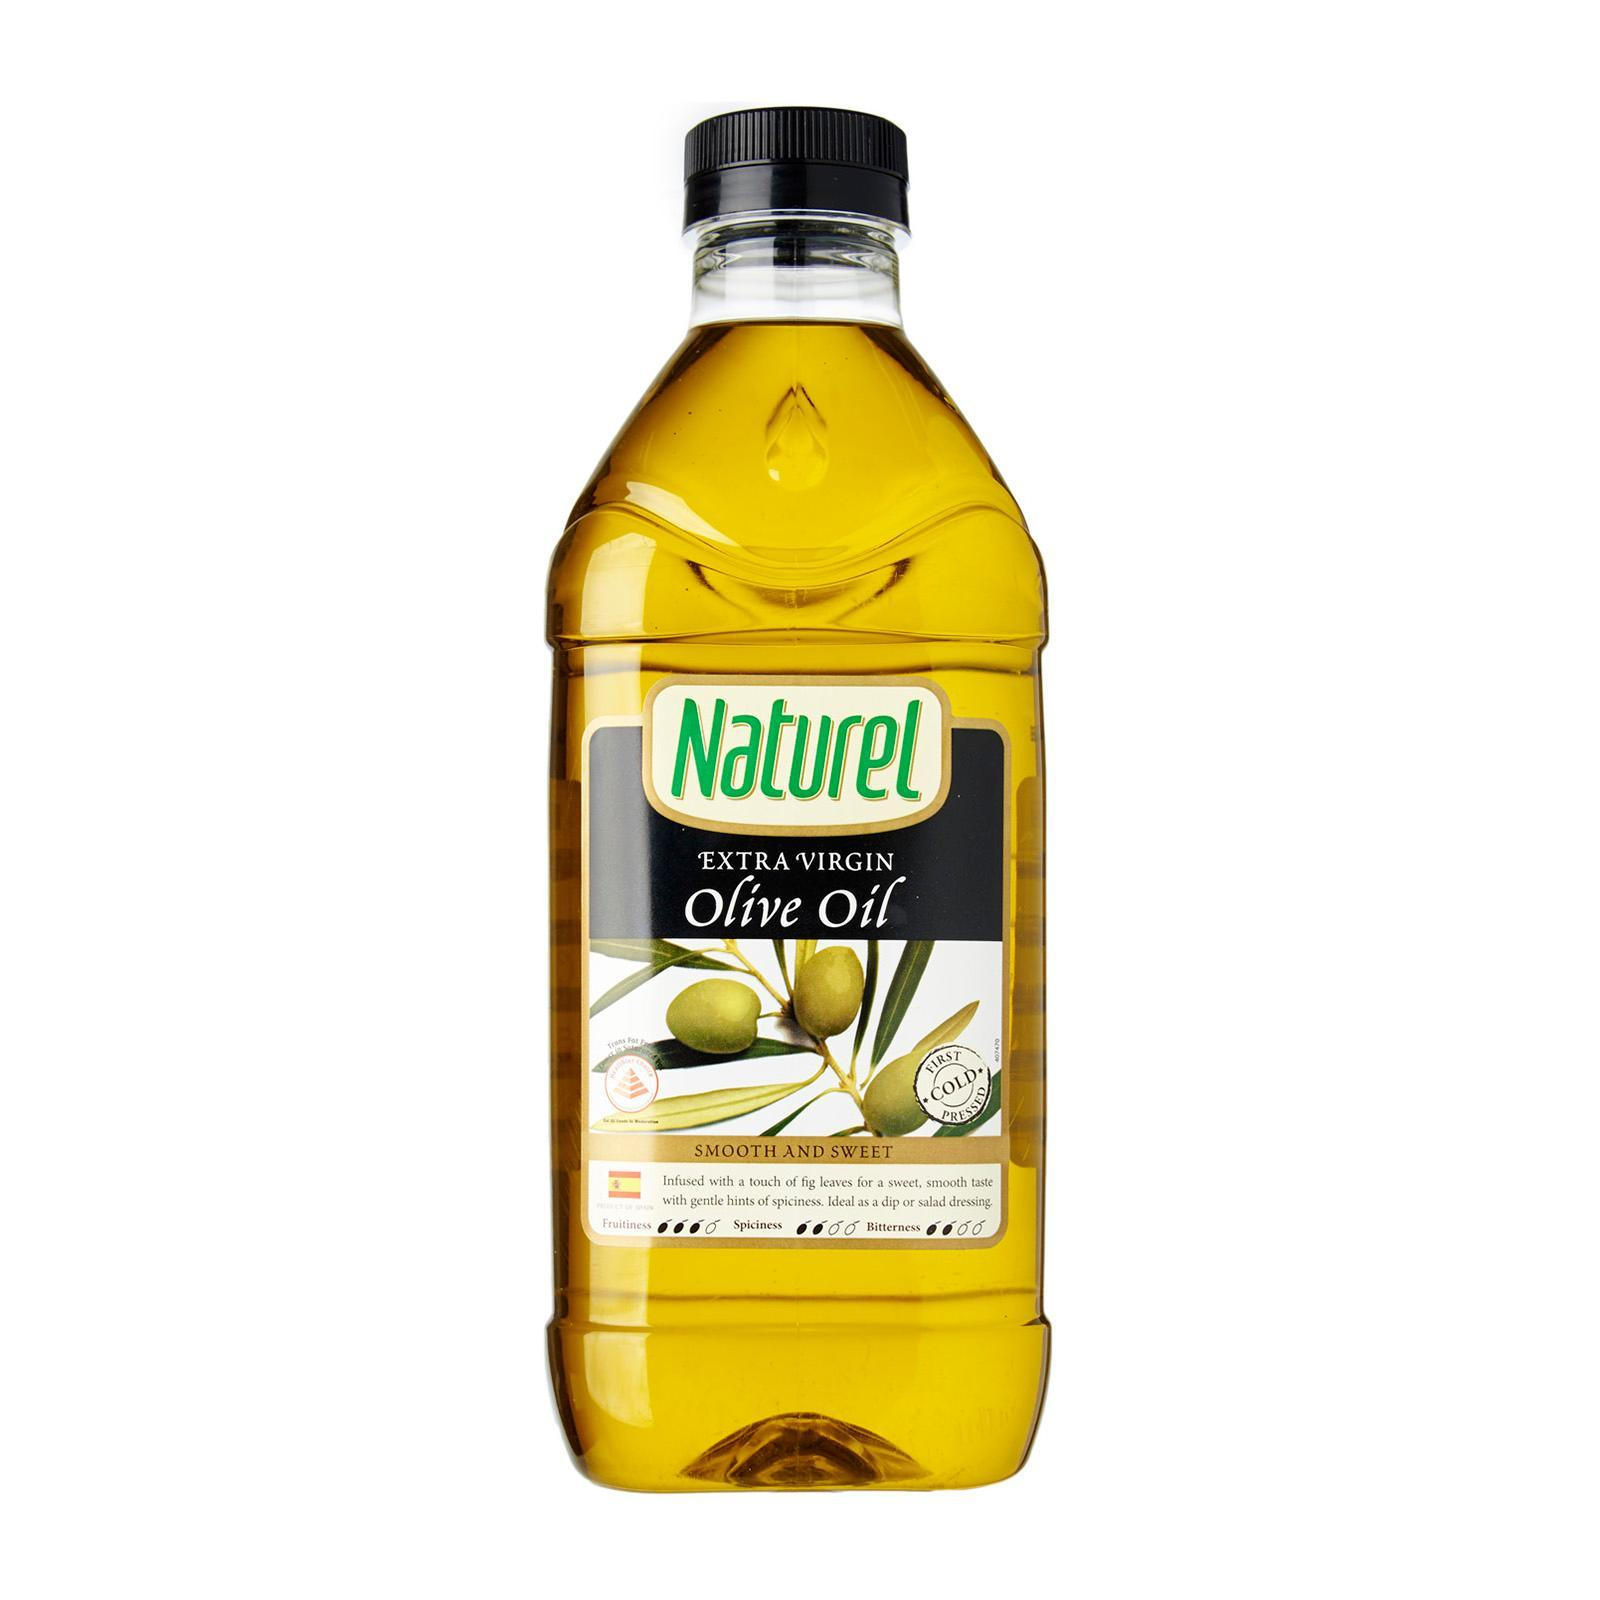 NATUREL Extra Virgin Olive Oil 1.5L